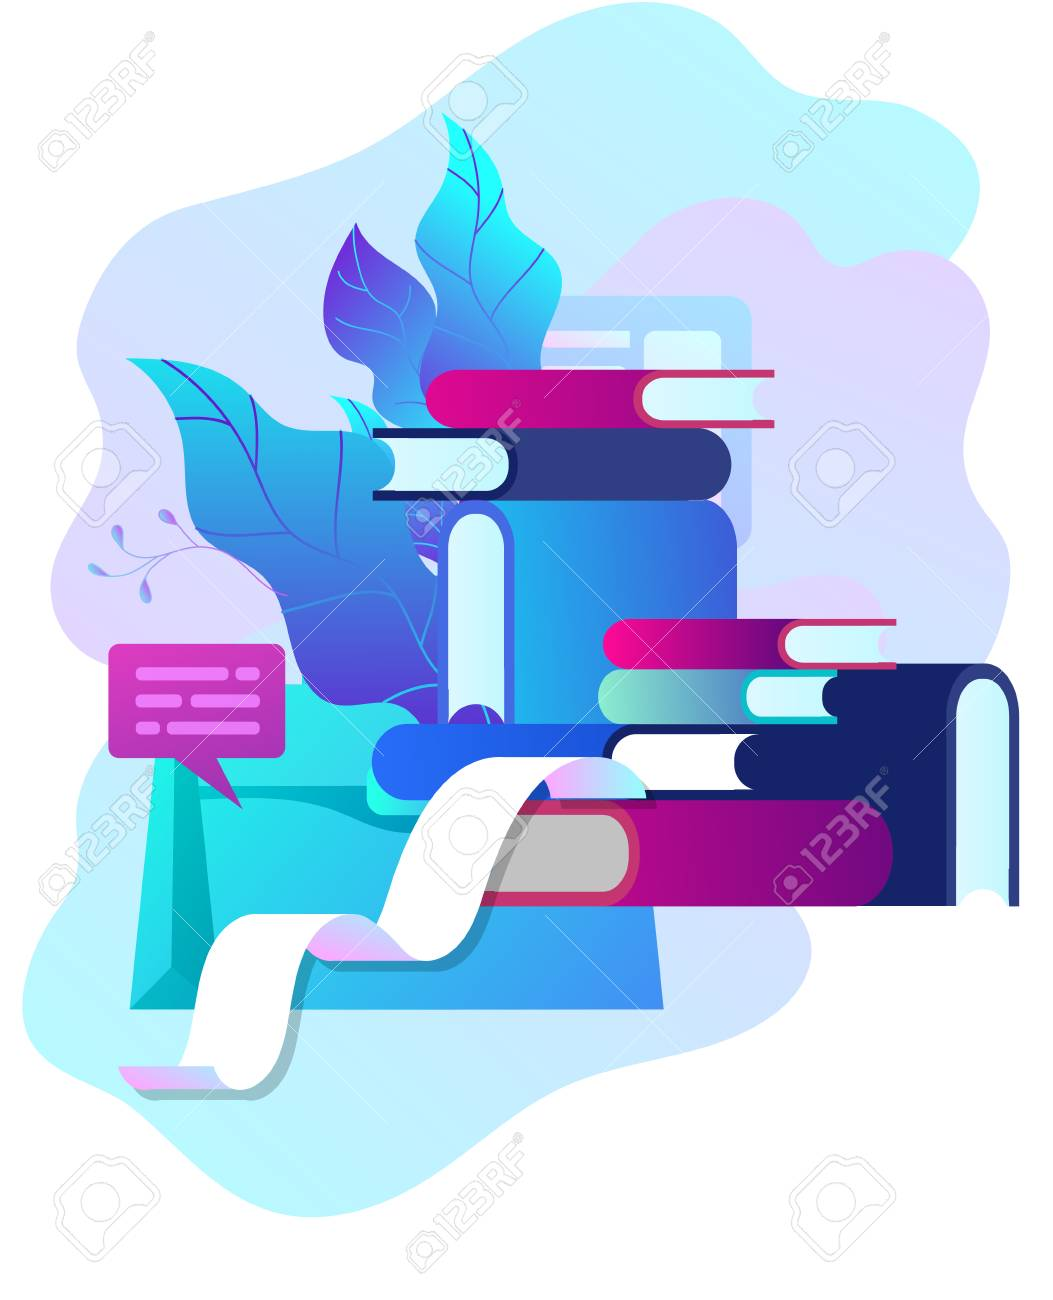 Concept vector illustration of business Blogging, people and education technology. Vector illustration news, copywriting, seminars, tutorial, creative writing, content management for web page, banner presentation, social media documents - 126752615